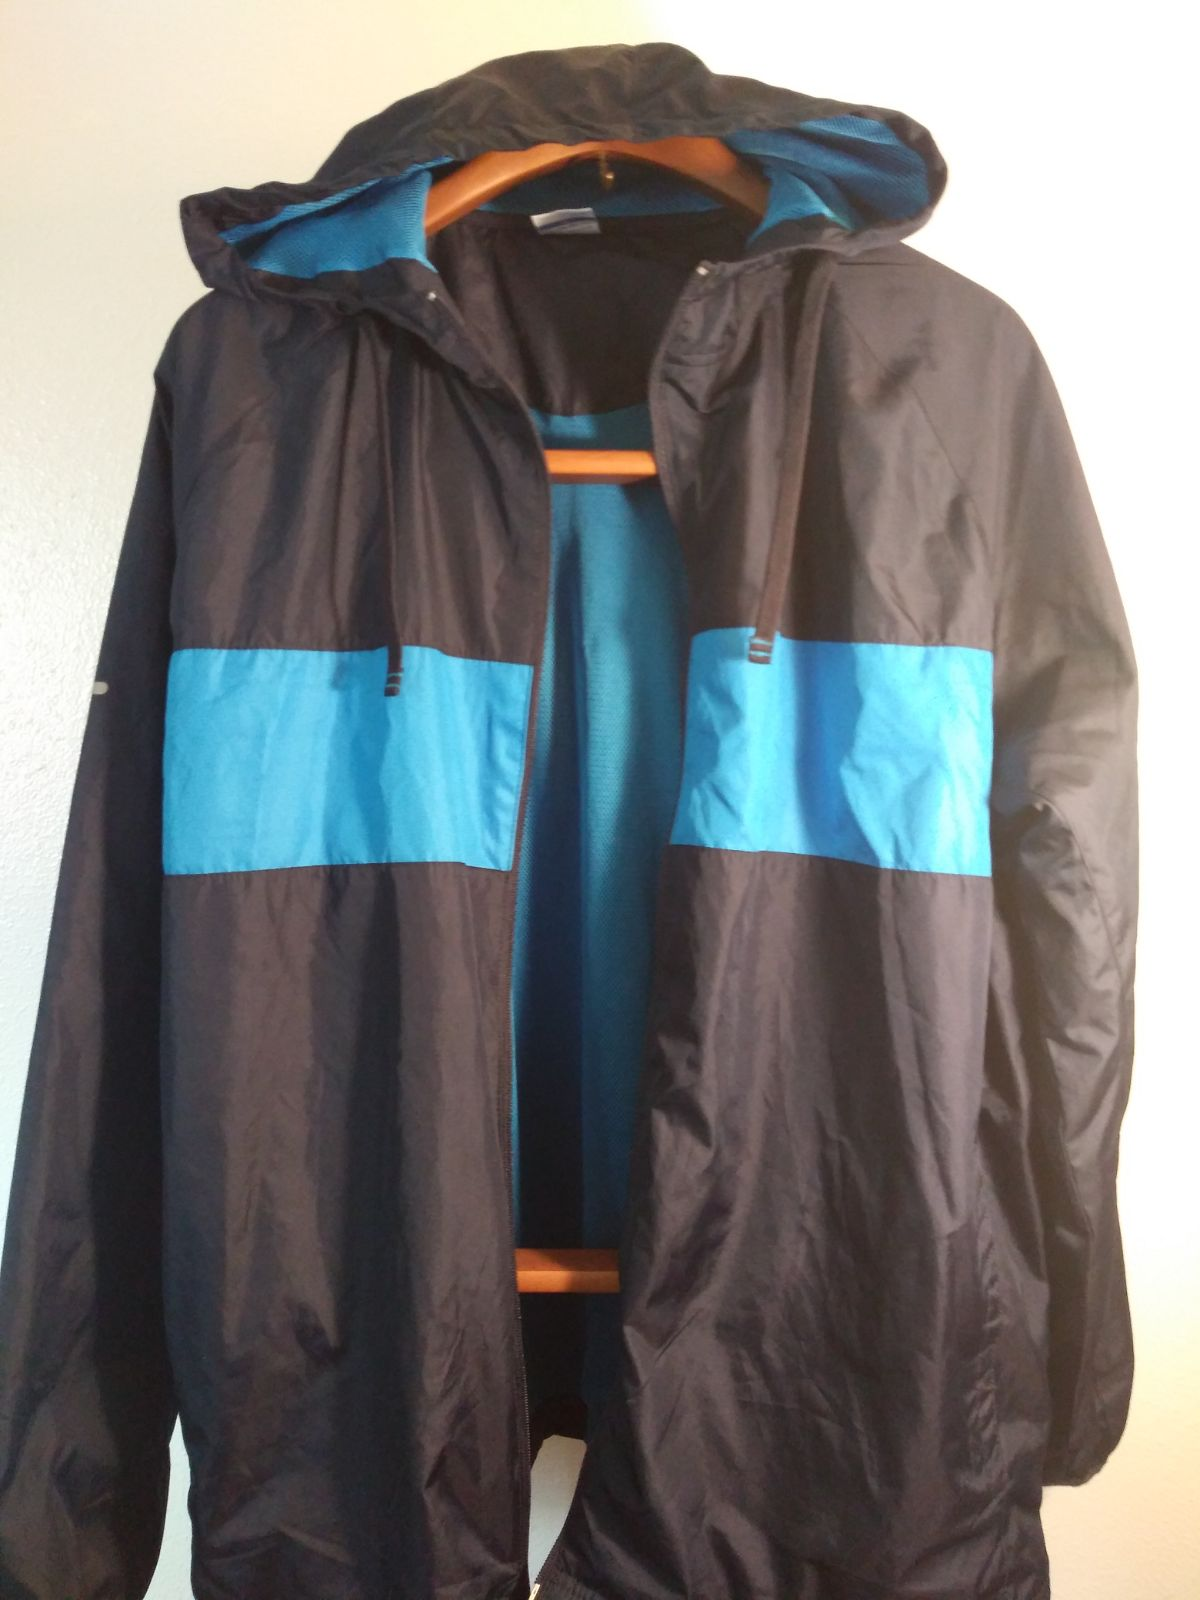 Rain Jacket by Starter with hood